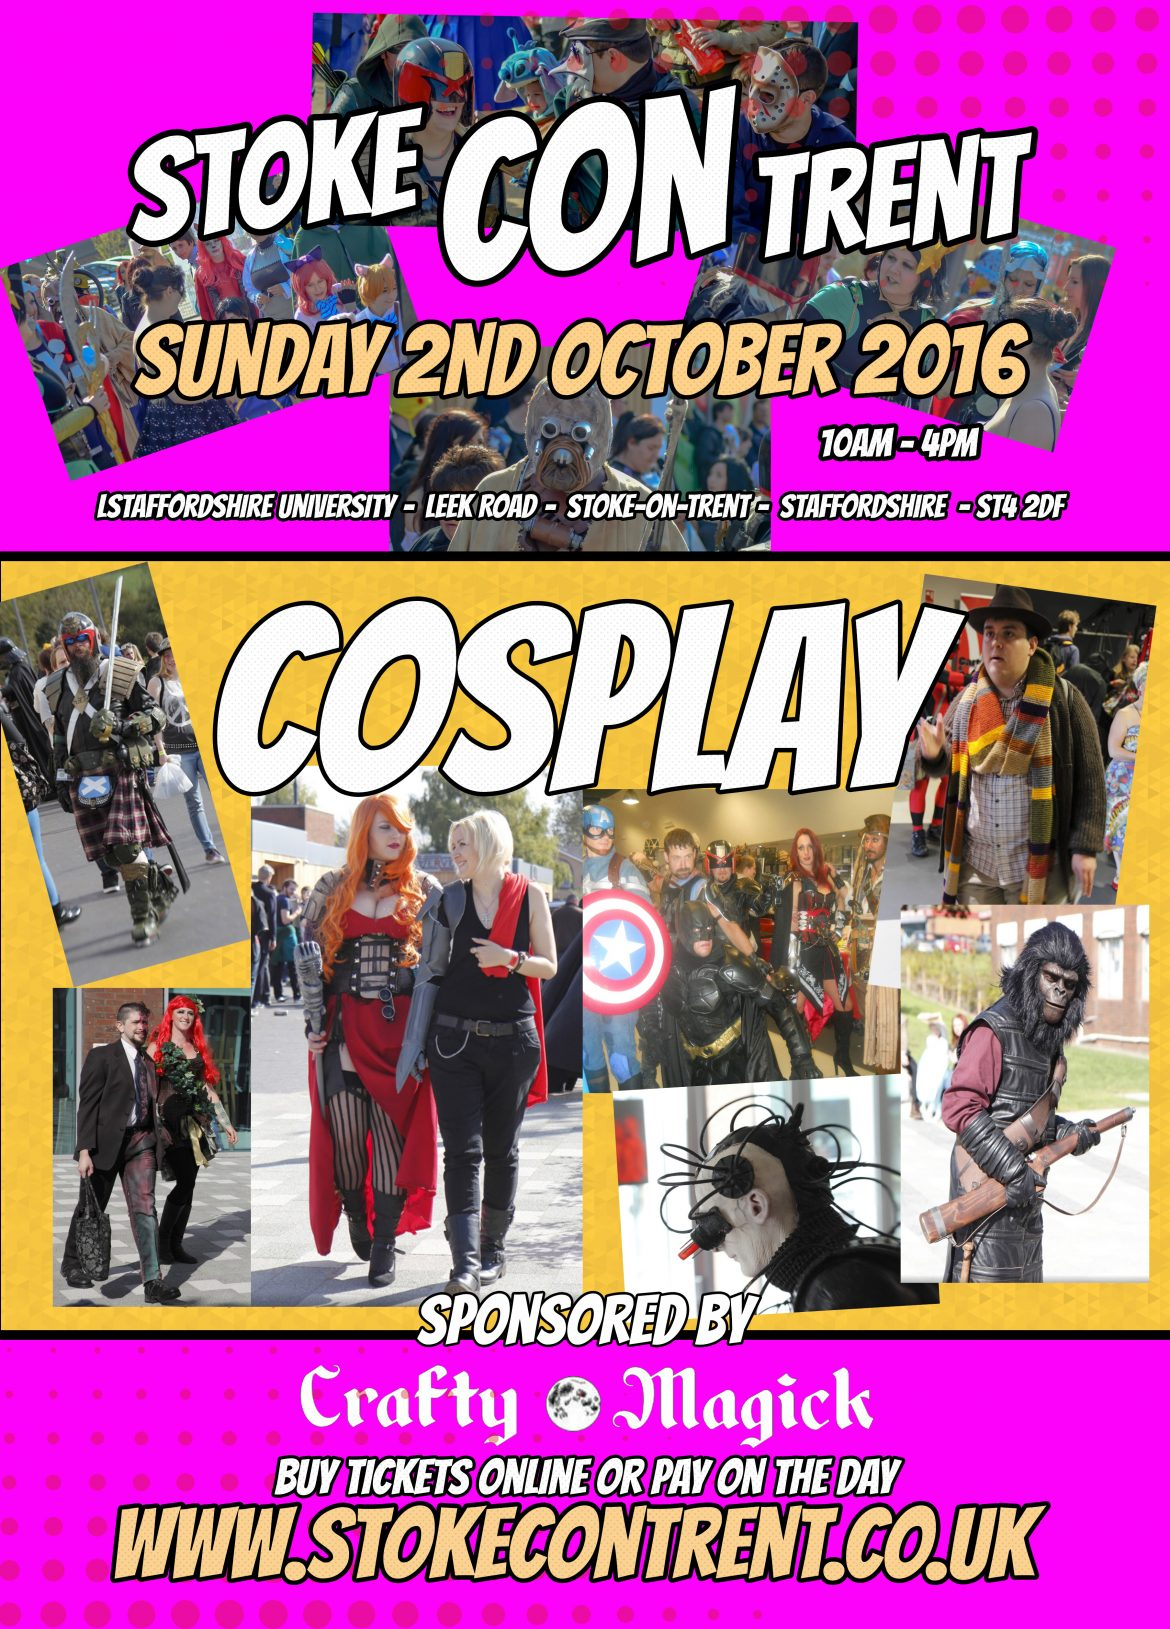 crafty magick cosplay cosplay-stoke-con-trent-5